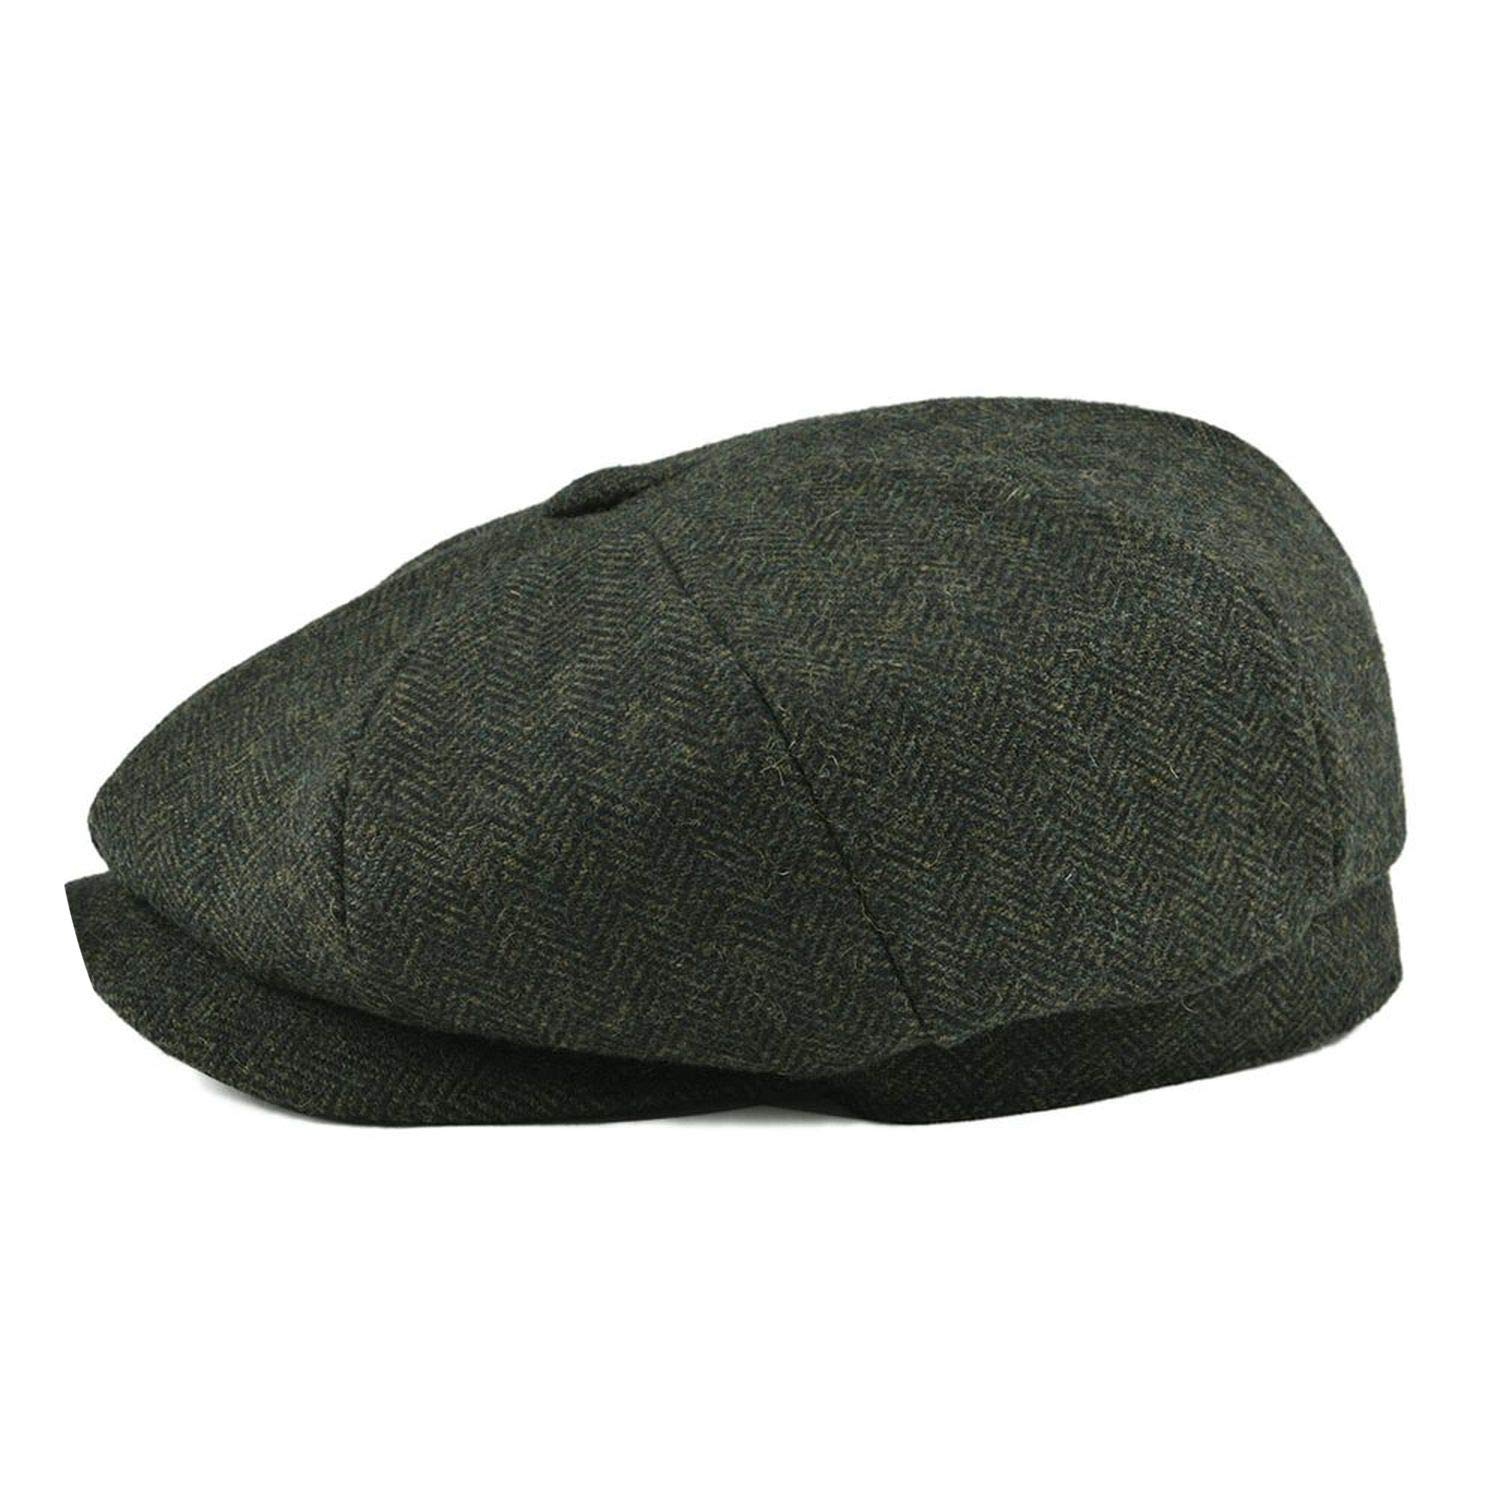 Wool Tweed sboy Cap Men Classic Retro Hat with Soft Lining Driver Cap Black Brown Green 005,Green,62-63cm